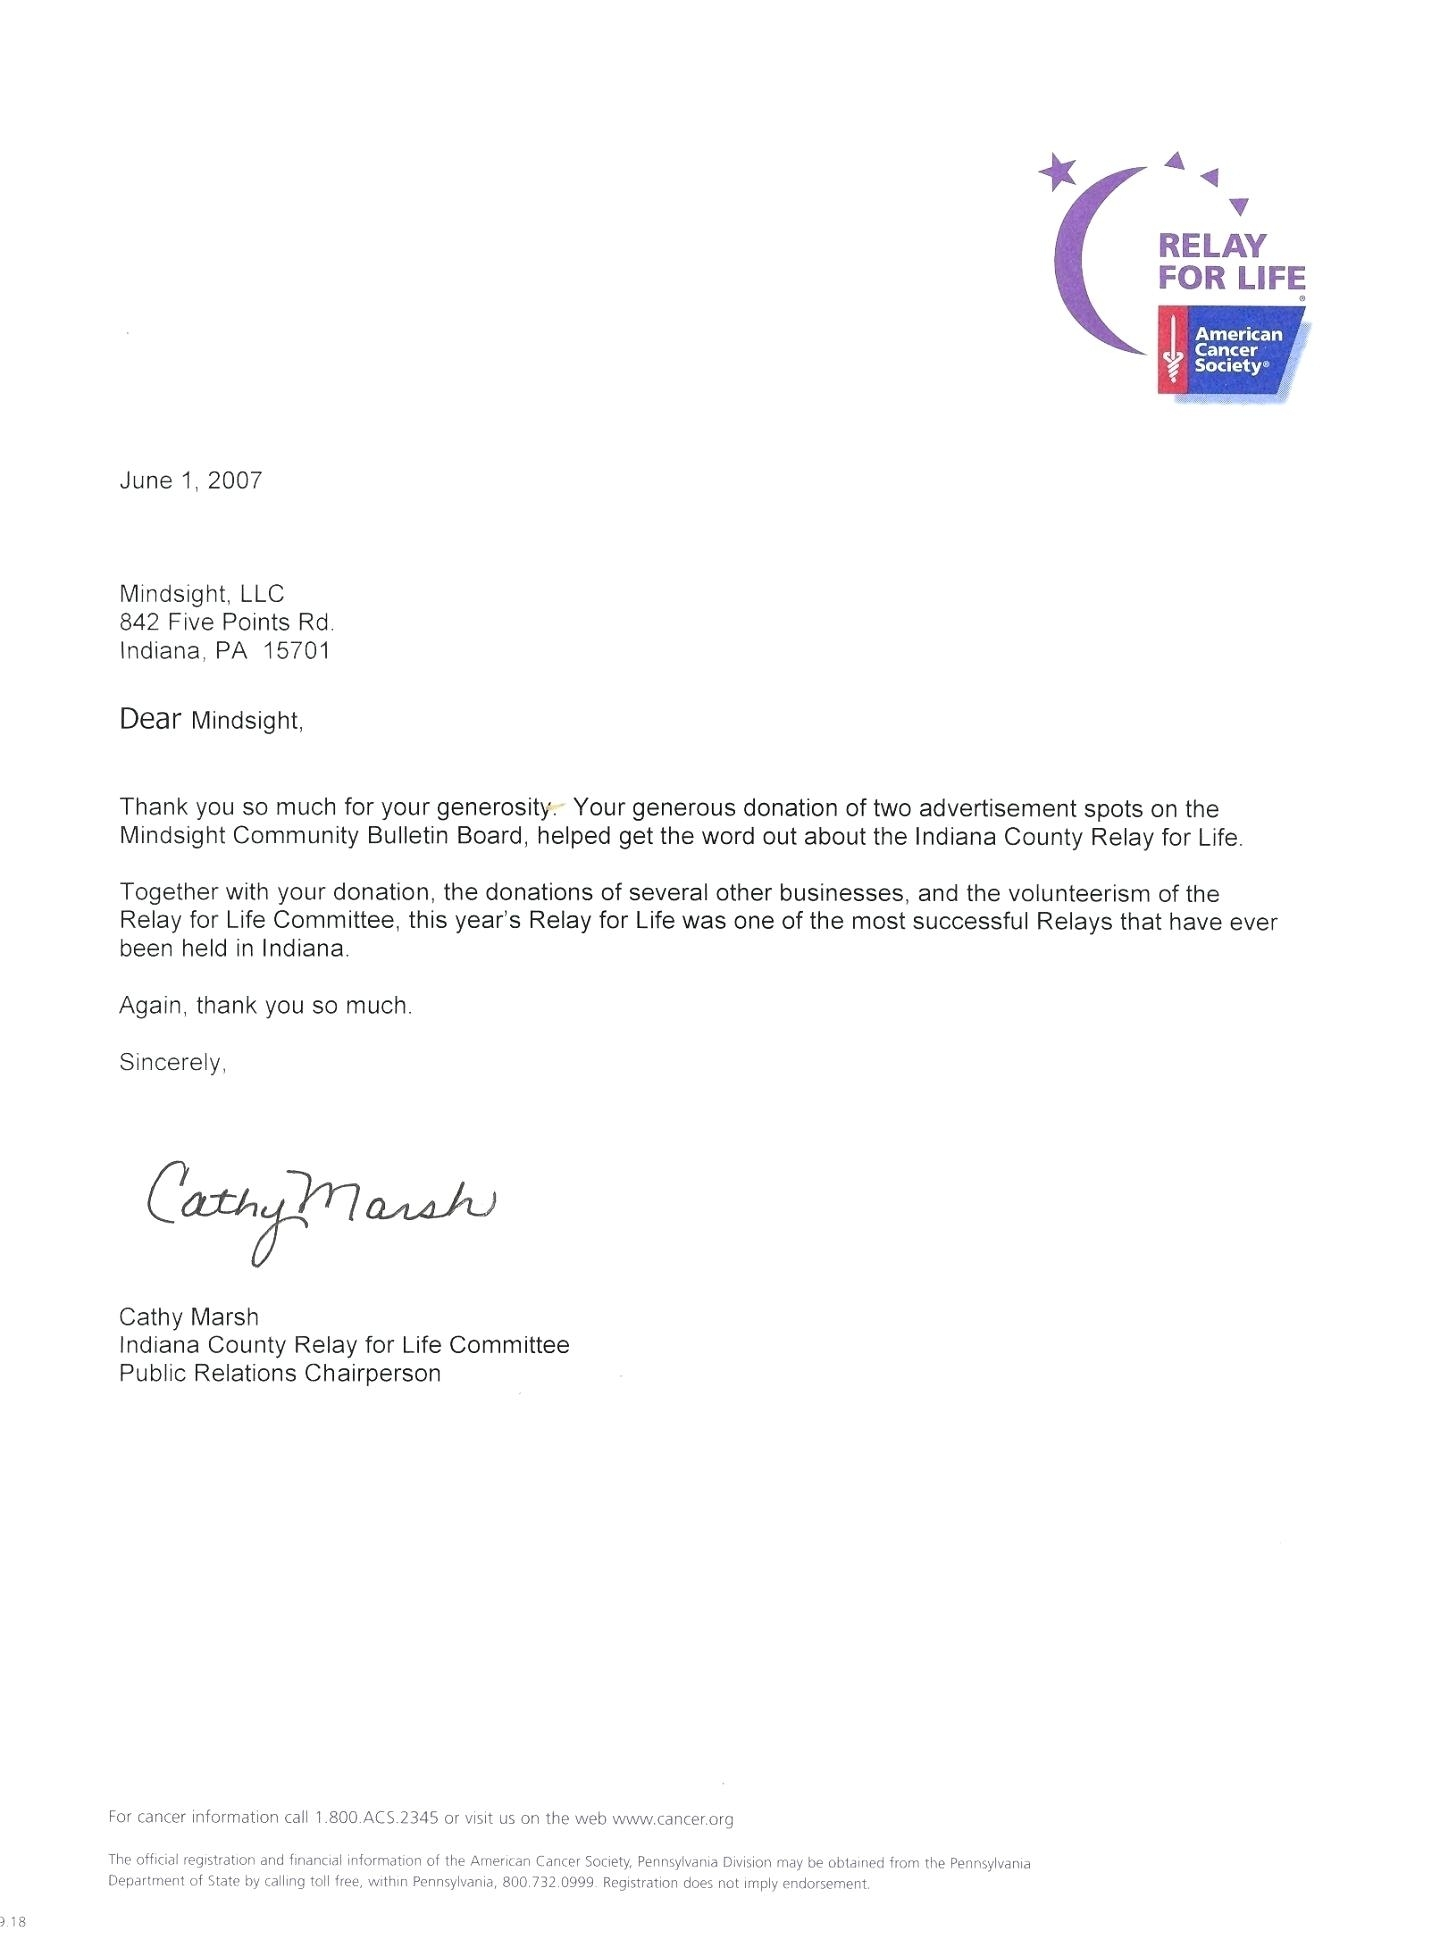 relay for life donation letter template Collection-Relay For Life Donation Letter Seven 19-p